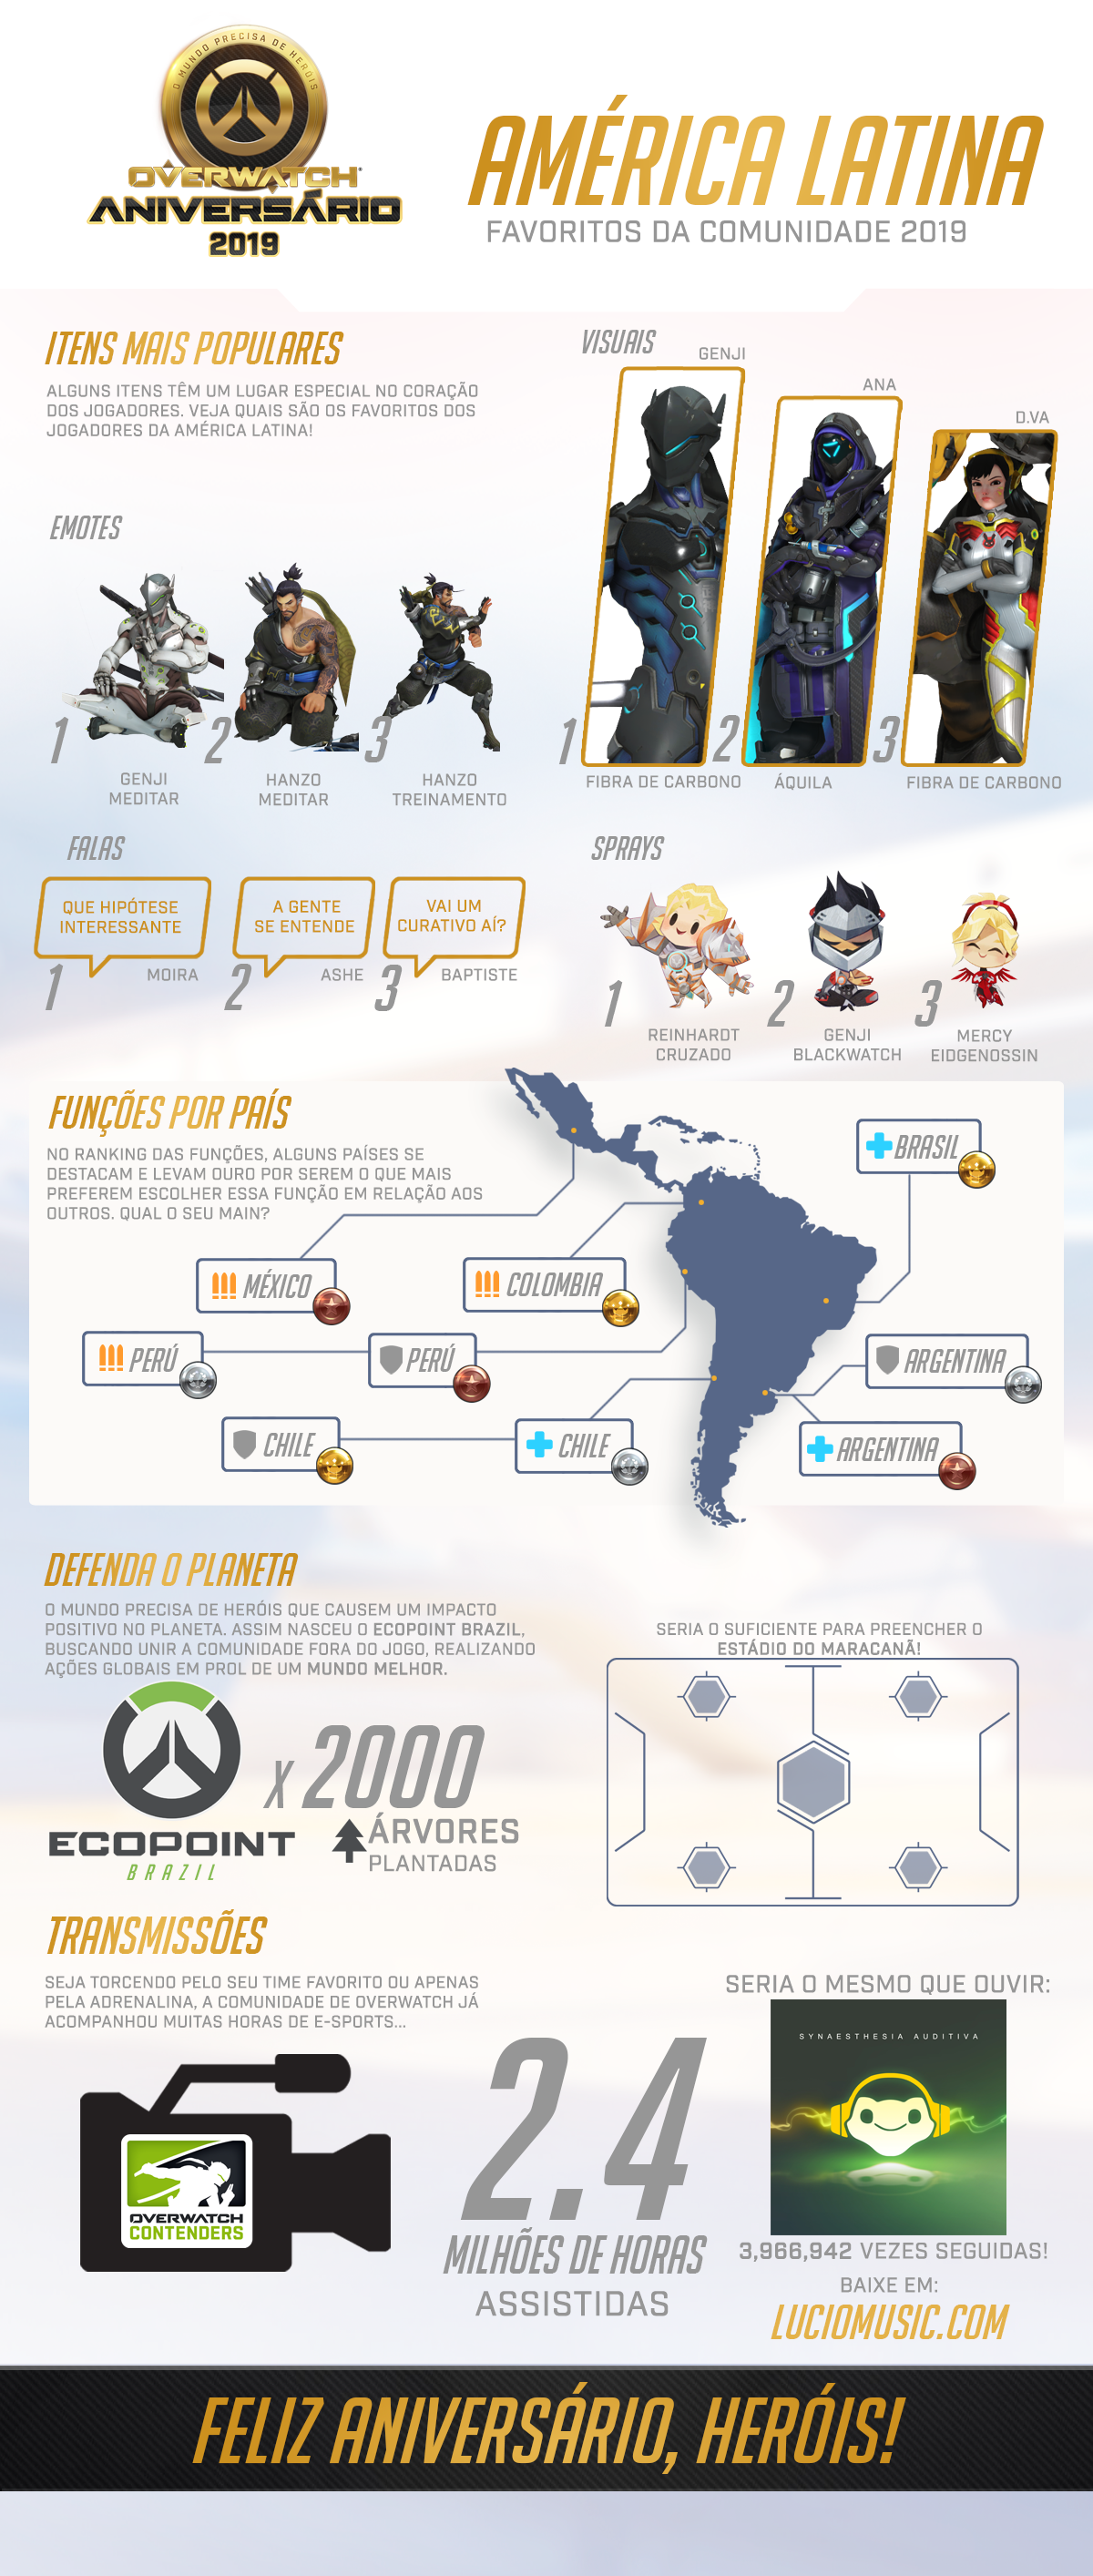 Anniversary2019-Infographic_OW_simplified - BR.png